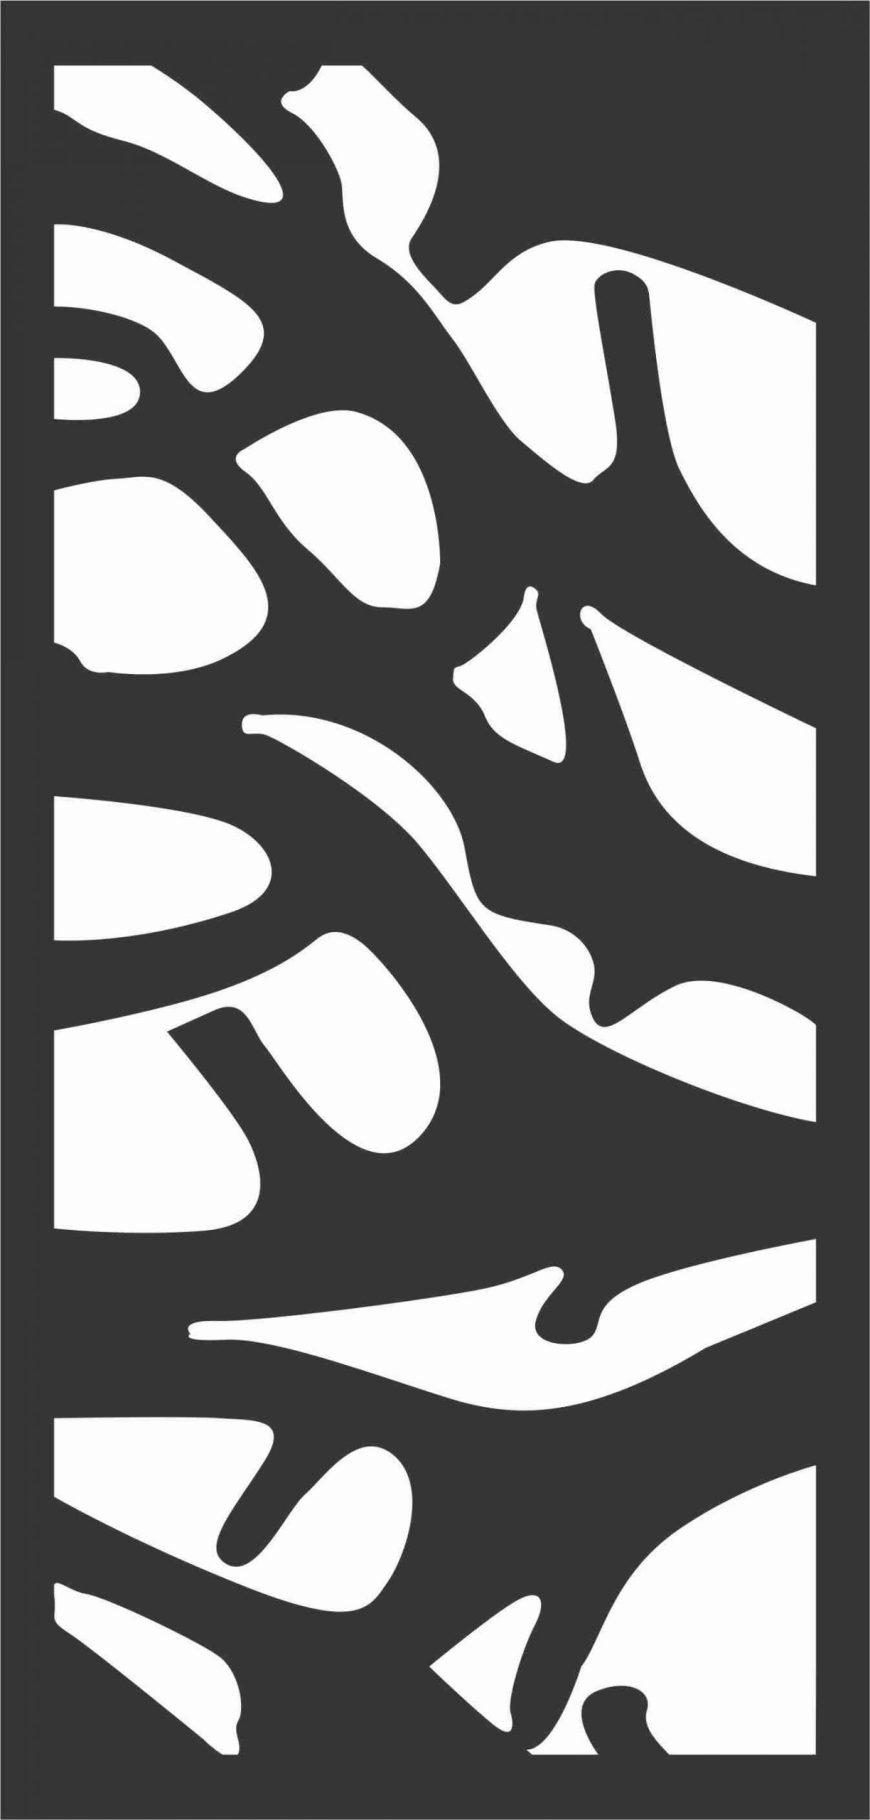 Decorative Screen Patterns For Laser Cutting 73 Free DXF File